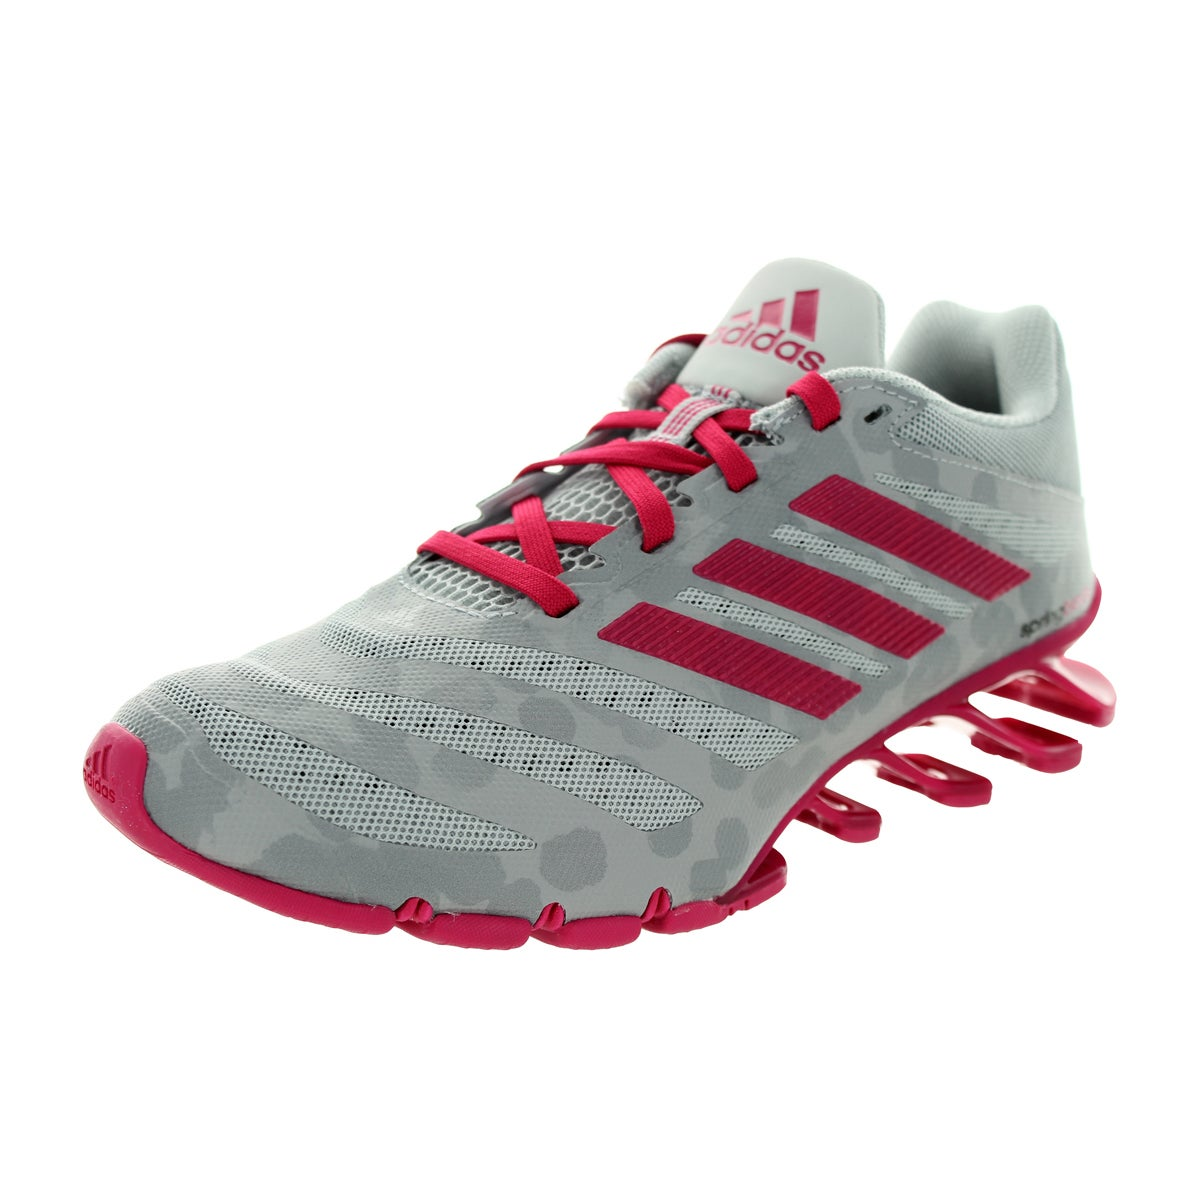 check out d51a4 69735 promo code for black purple mens adidas springblade ignite ...